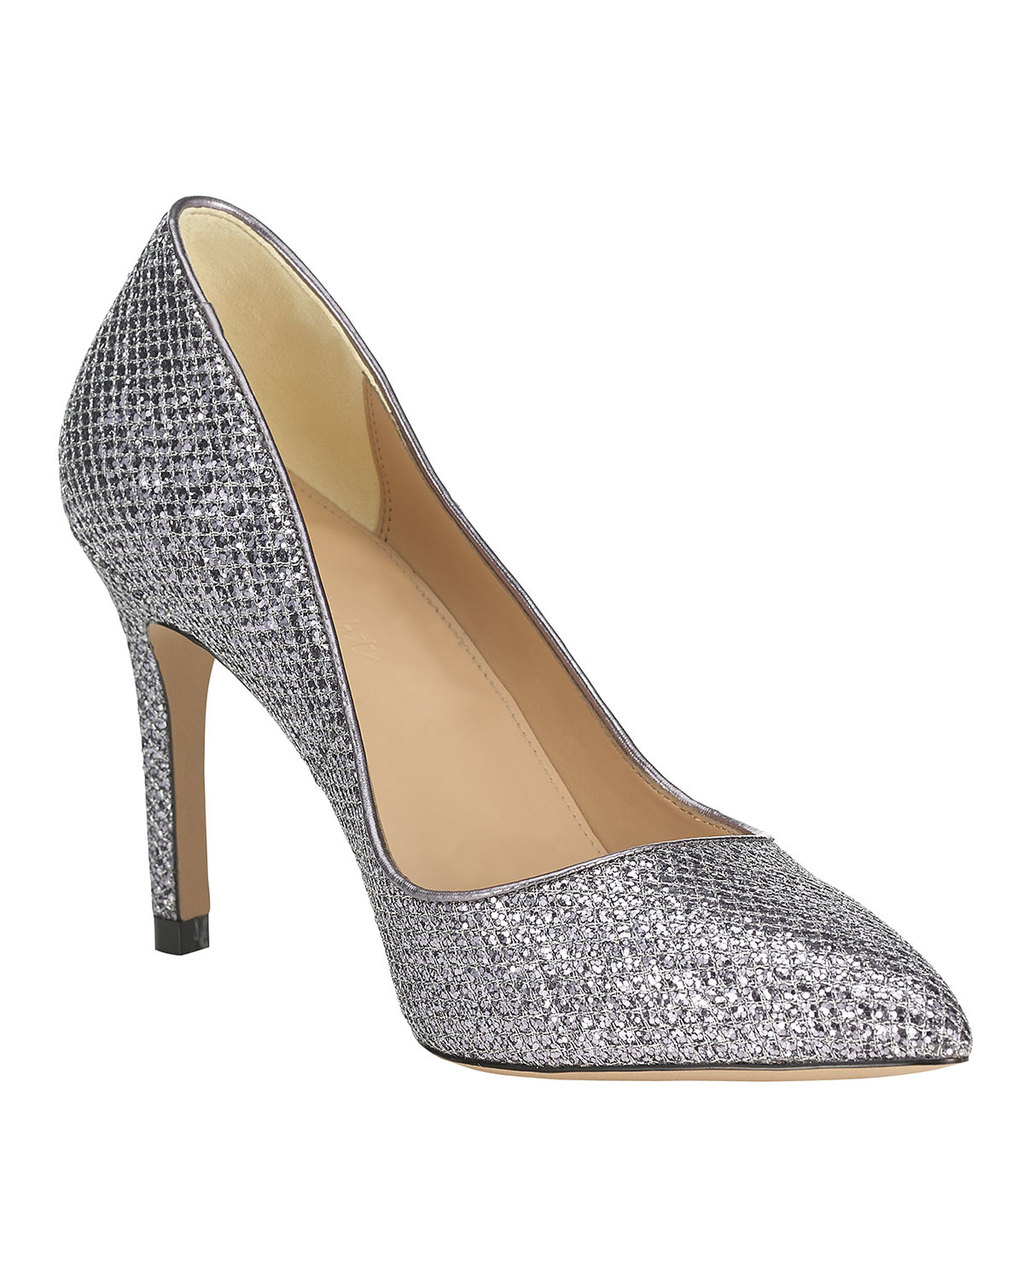 Lucie Glitter Point Heel - predominant colour: silver; occasions: evening, occasion; material: faux leather; heel height: high; embellishment: glitter; heel: stiletto; toe: pointed toe; style: courts; finish: metallic; pattern: plain; season: a/w 2015